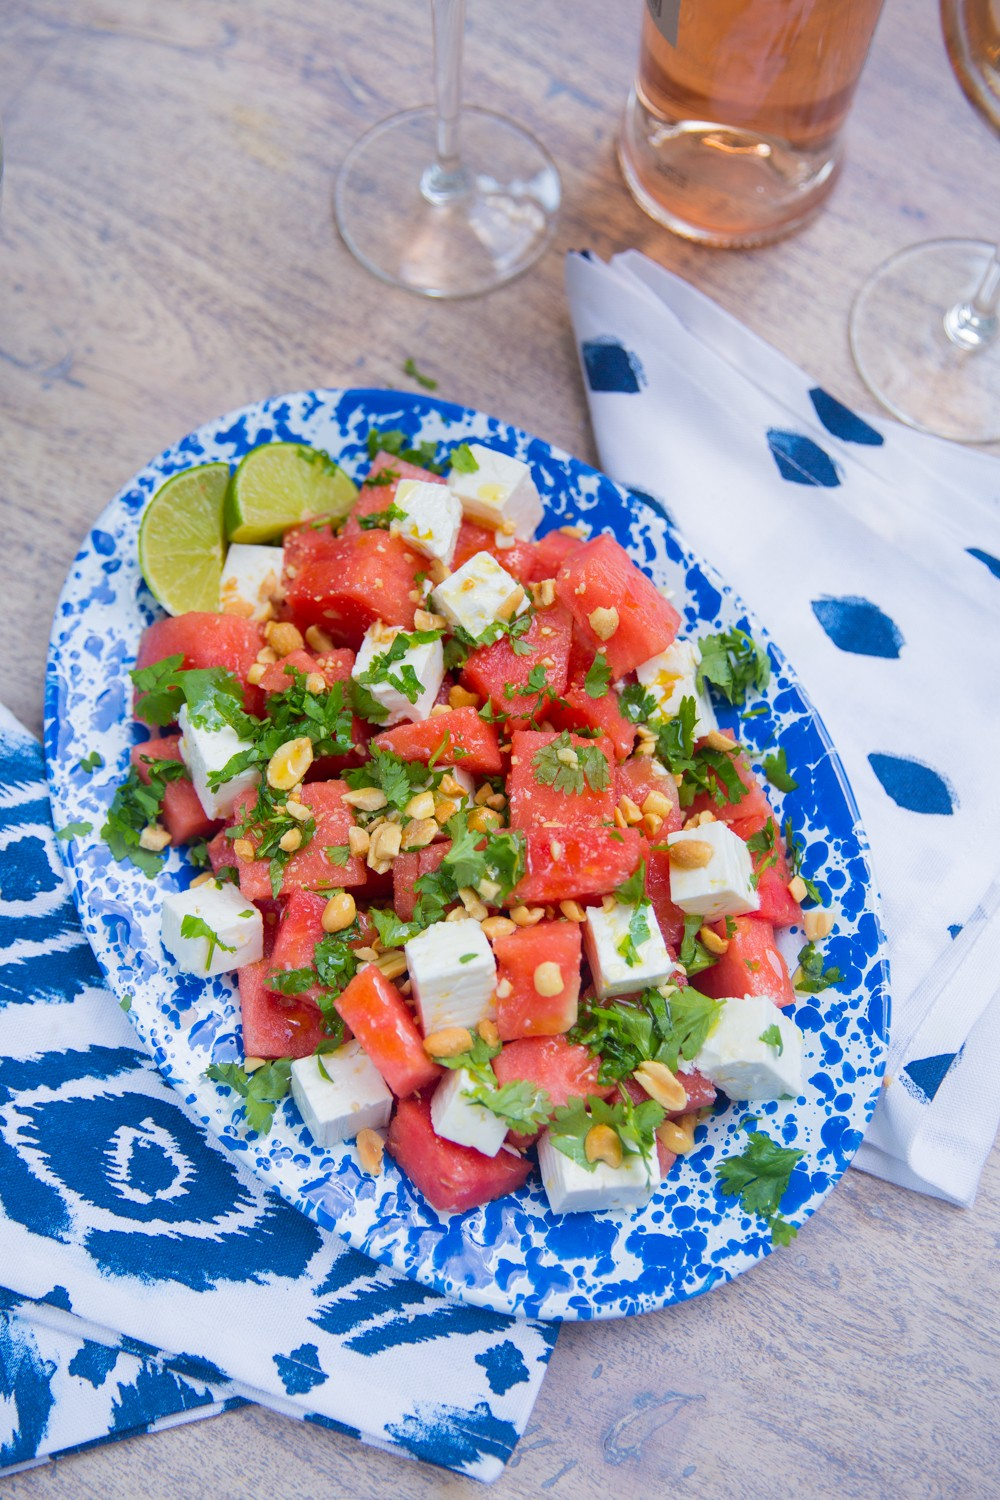 Watermelon Salad - Fresh, vibrant flavours with salty feta and crunchy peanuts